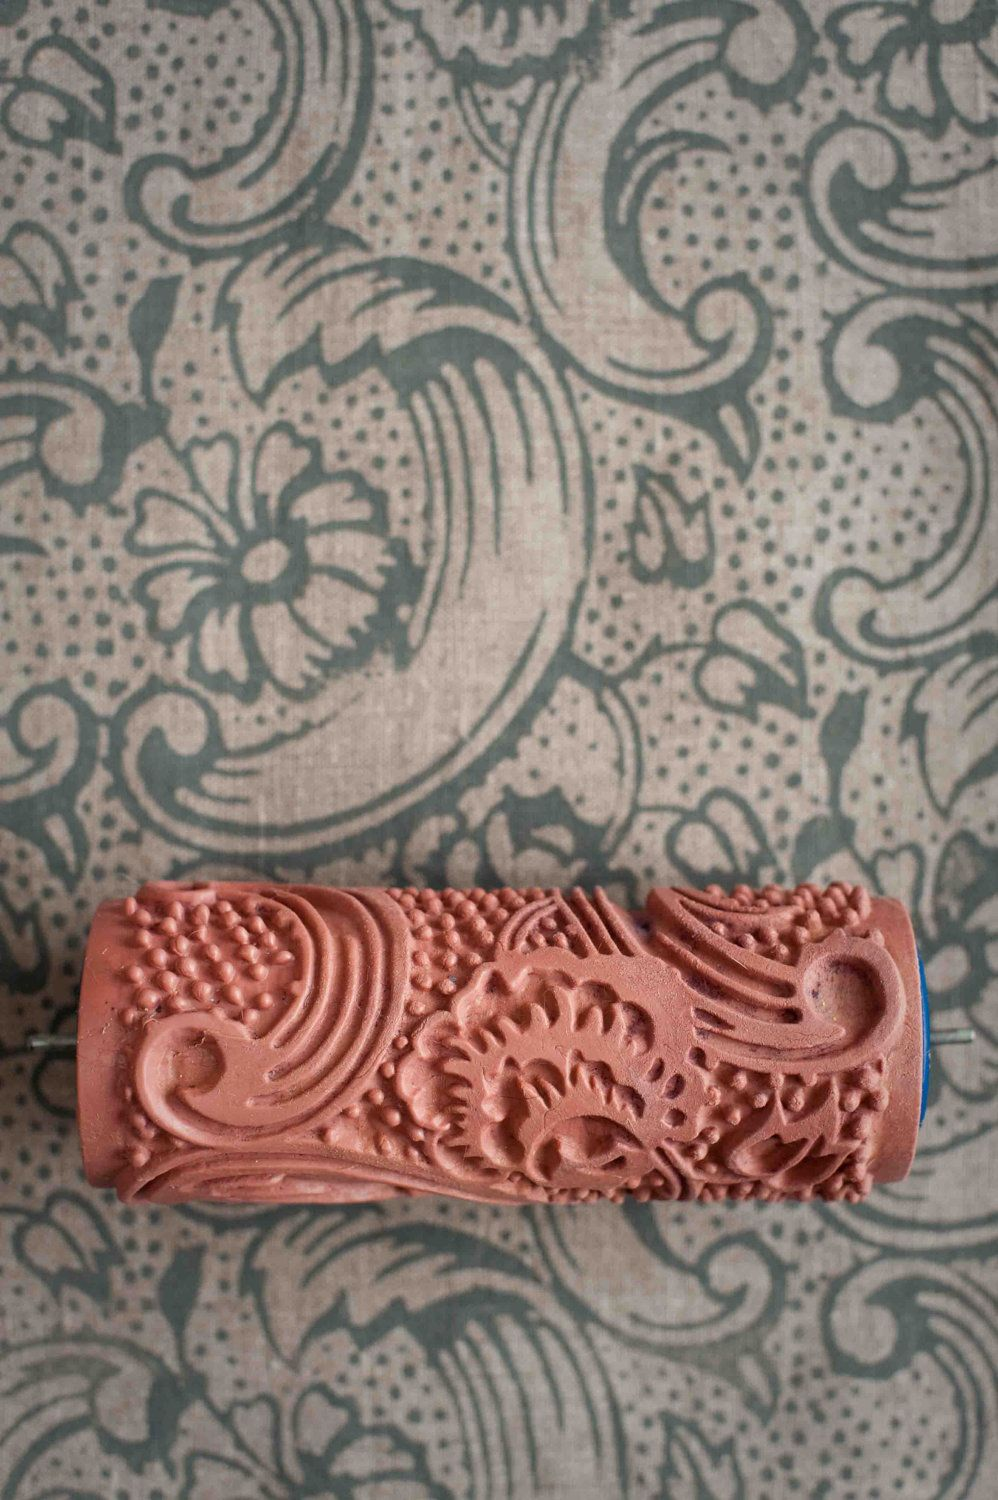 Wallpaper Paint Roller wallpaper paint: the paint roller that creates a wallpaper look